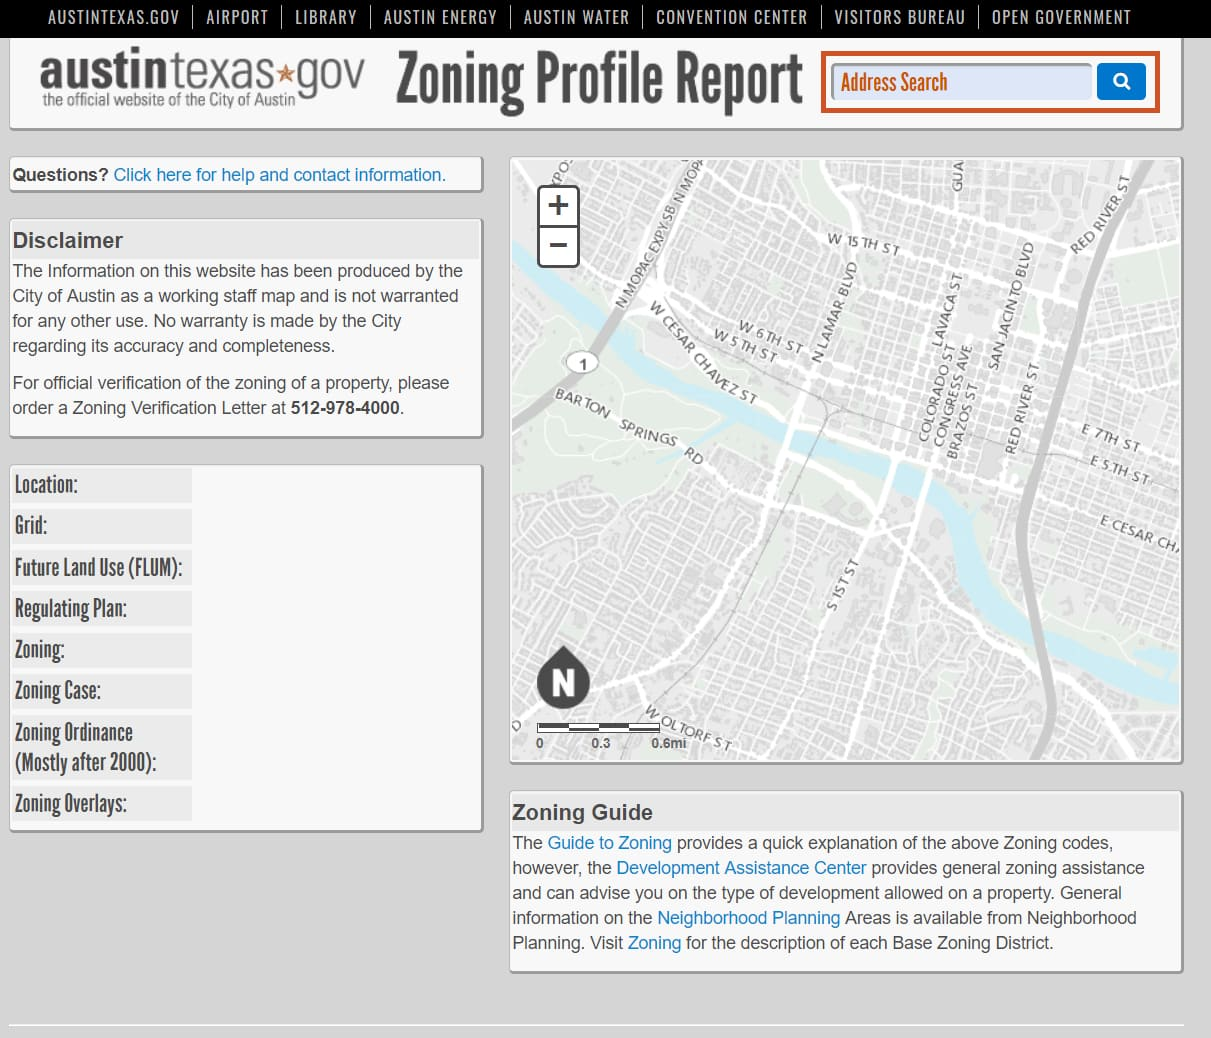 Address search for City of Austin Zoning